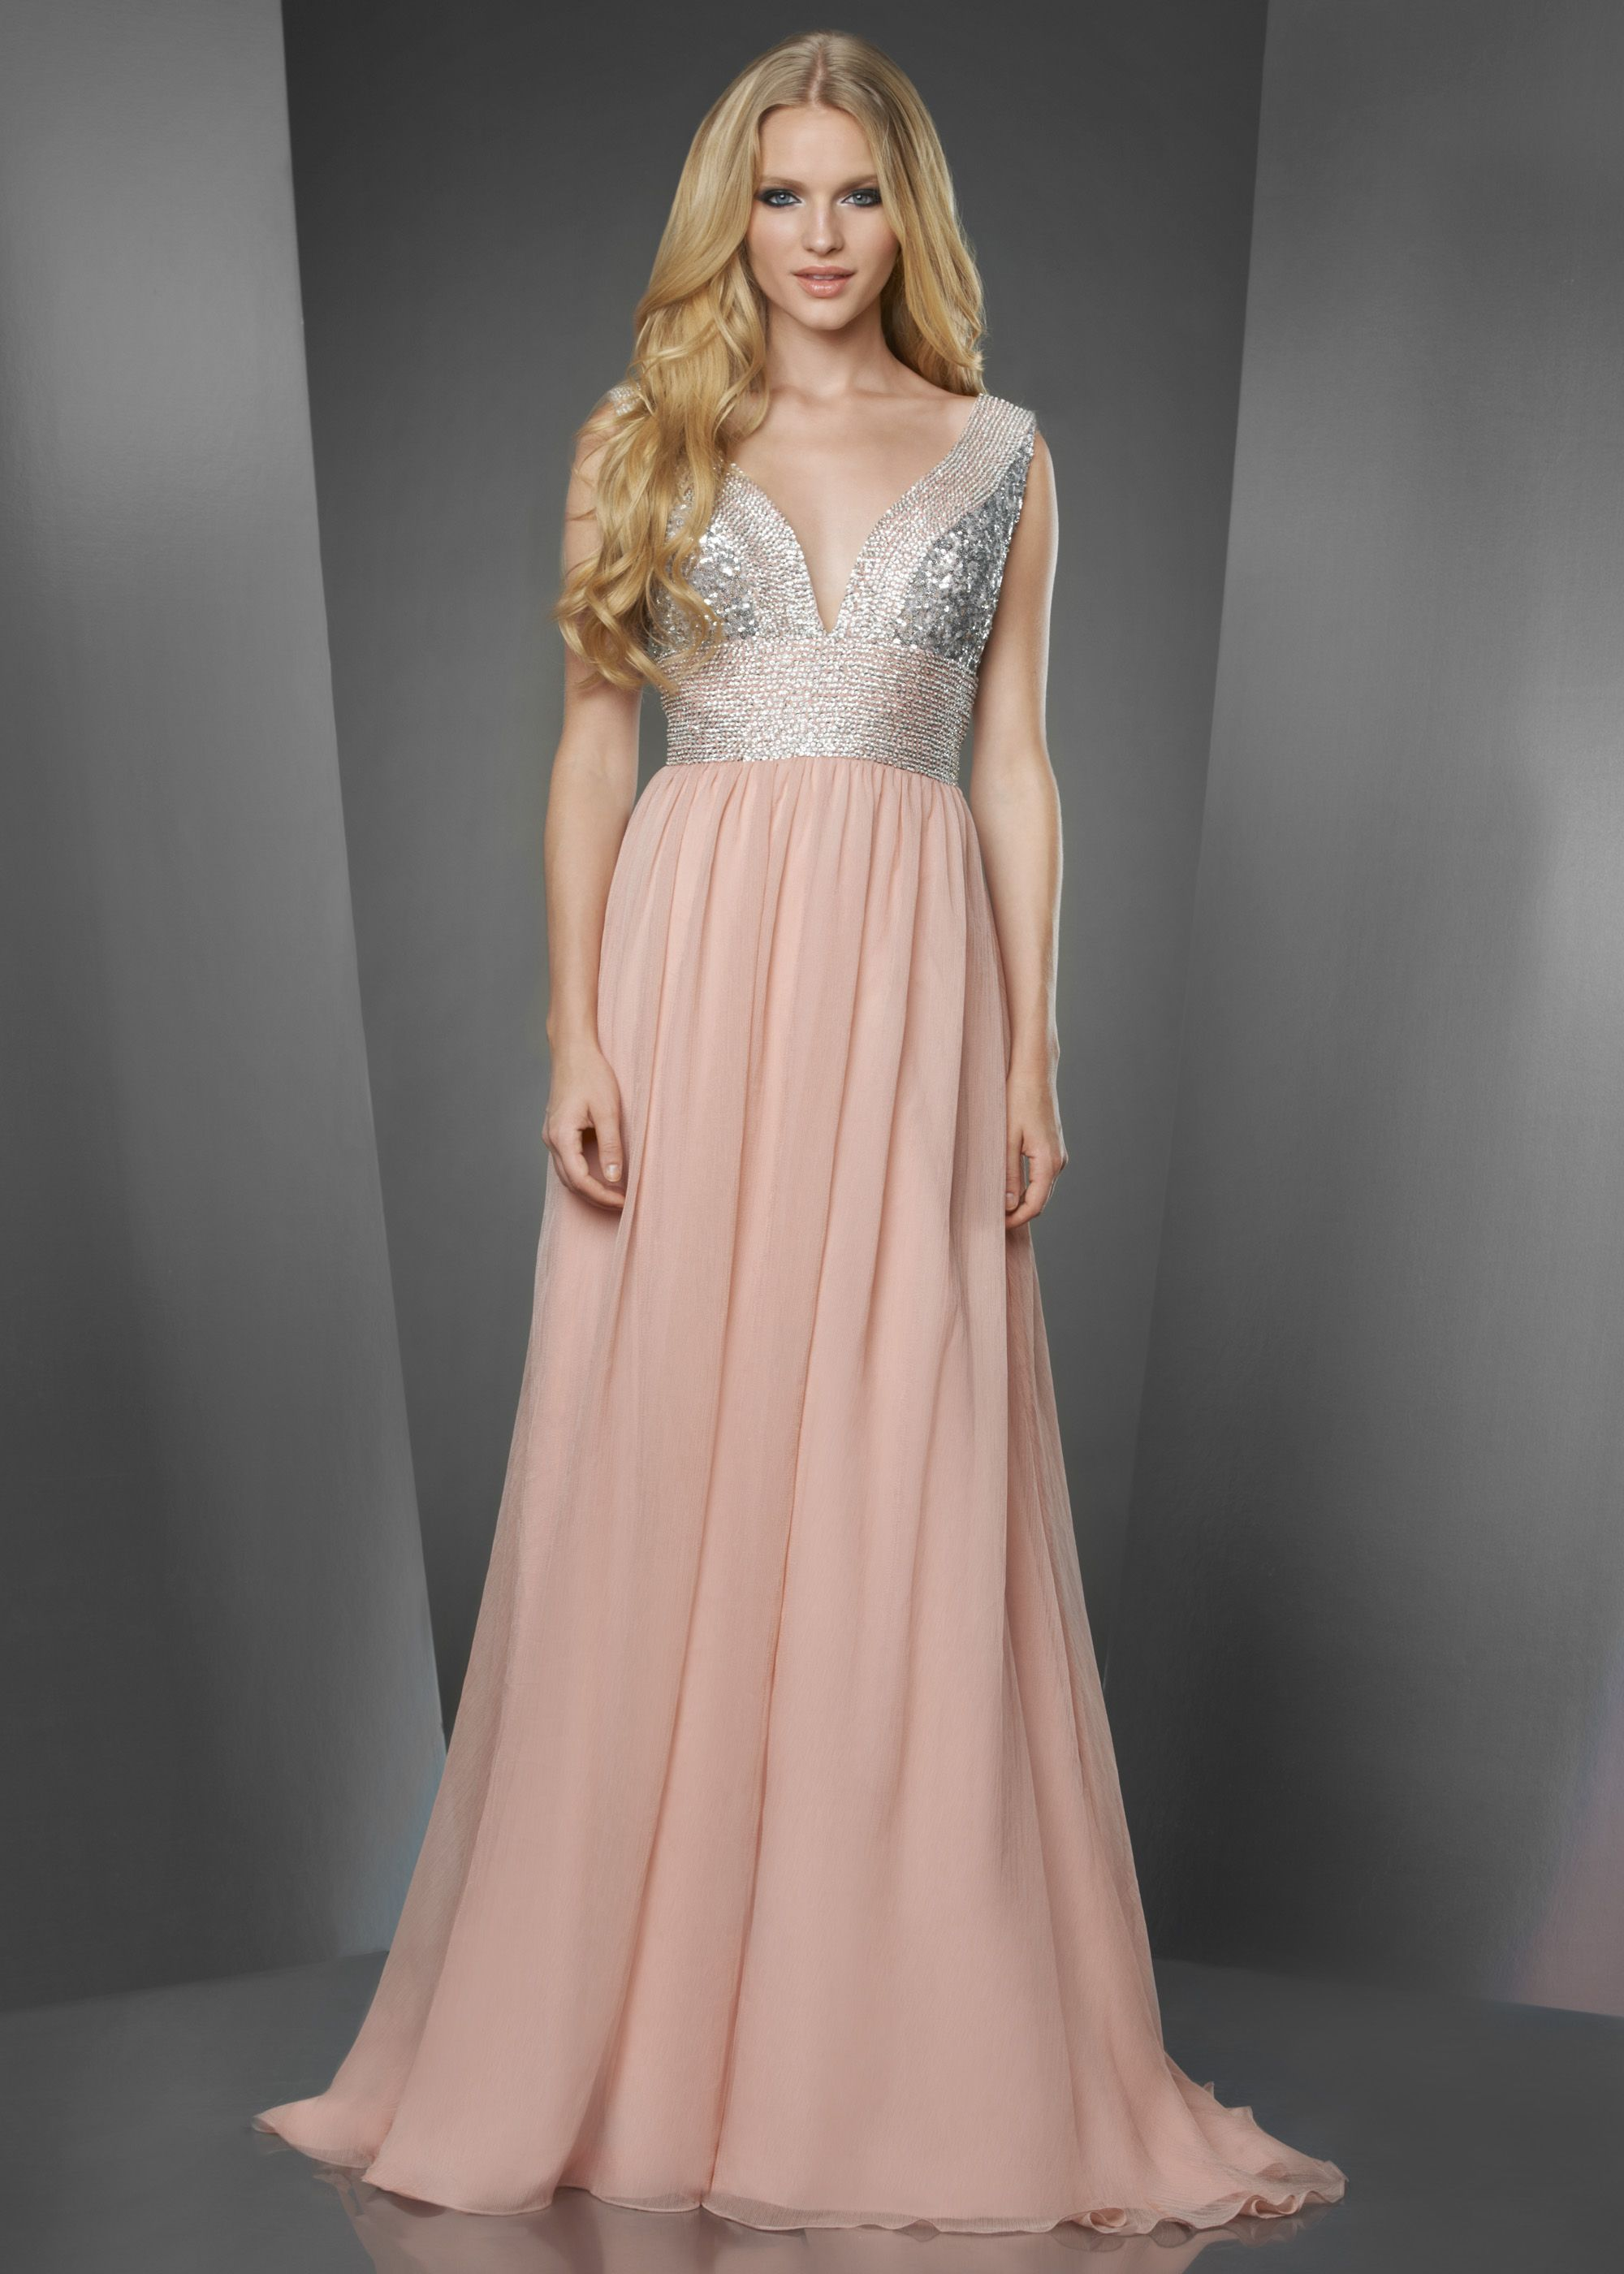 Shimmer by Bari Jay 59810 - Blush/Silver Crinkle Chiffon Prom Dress ...